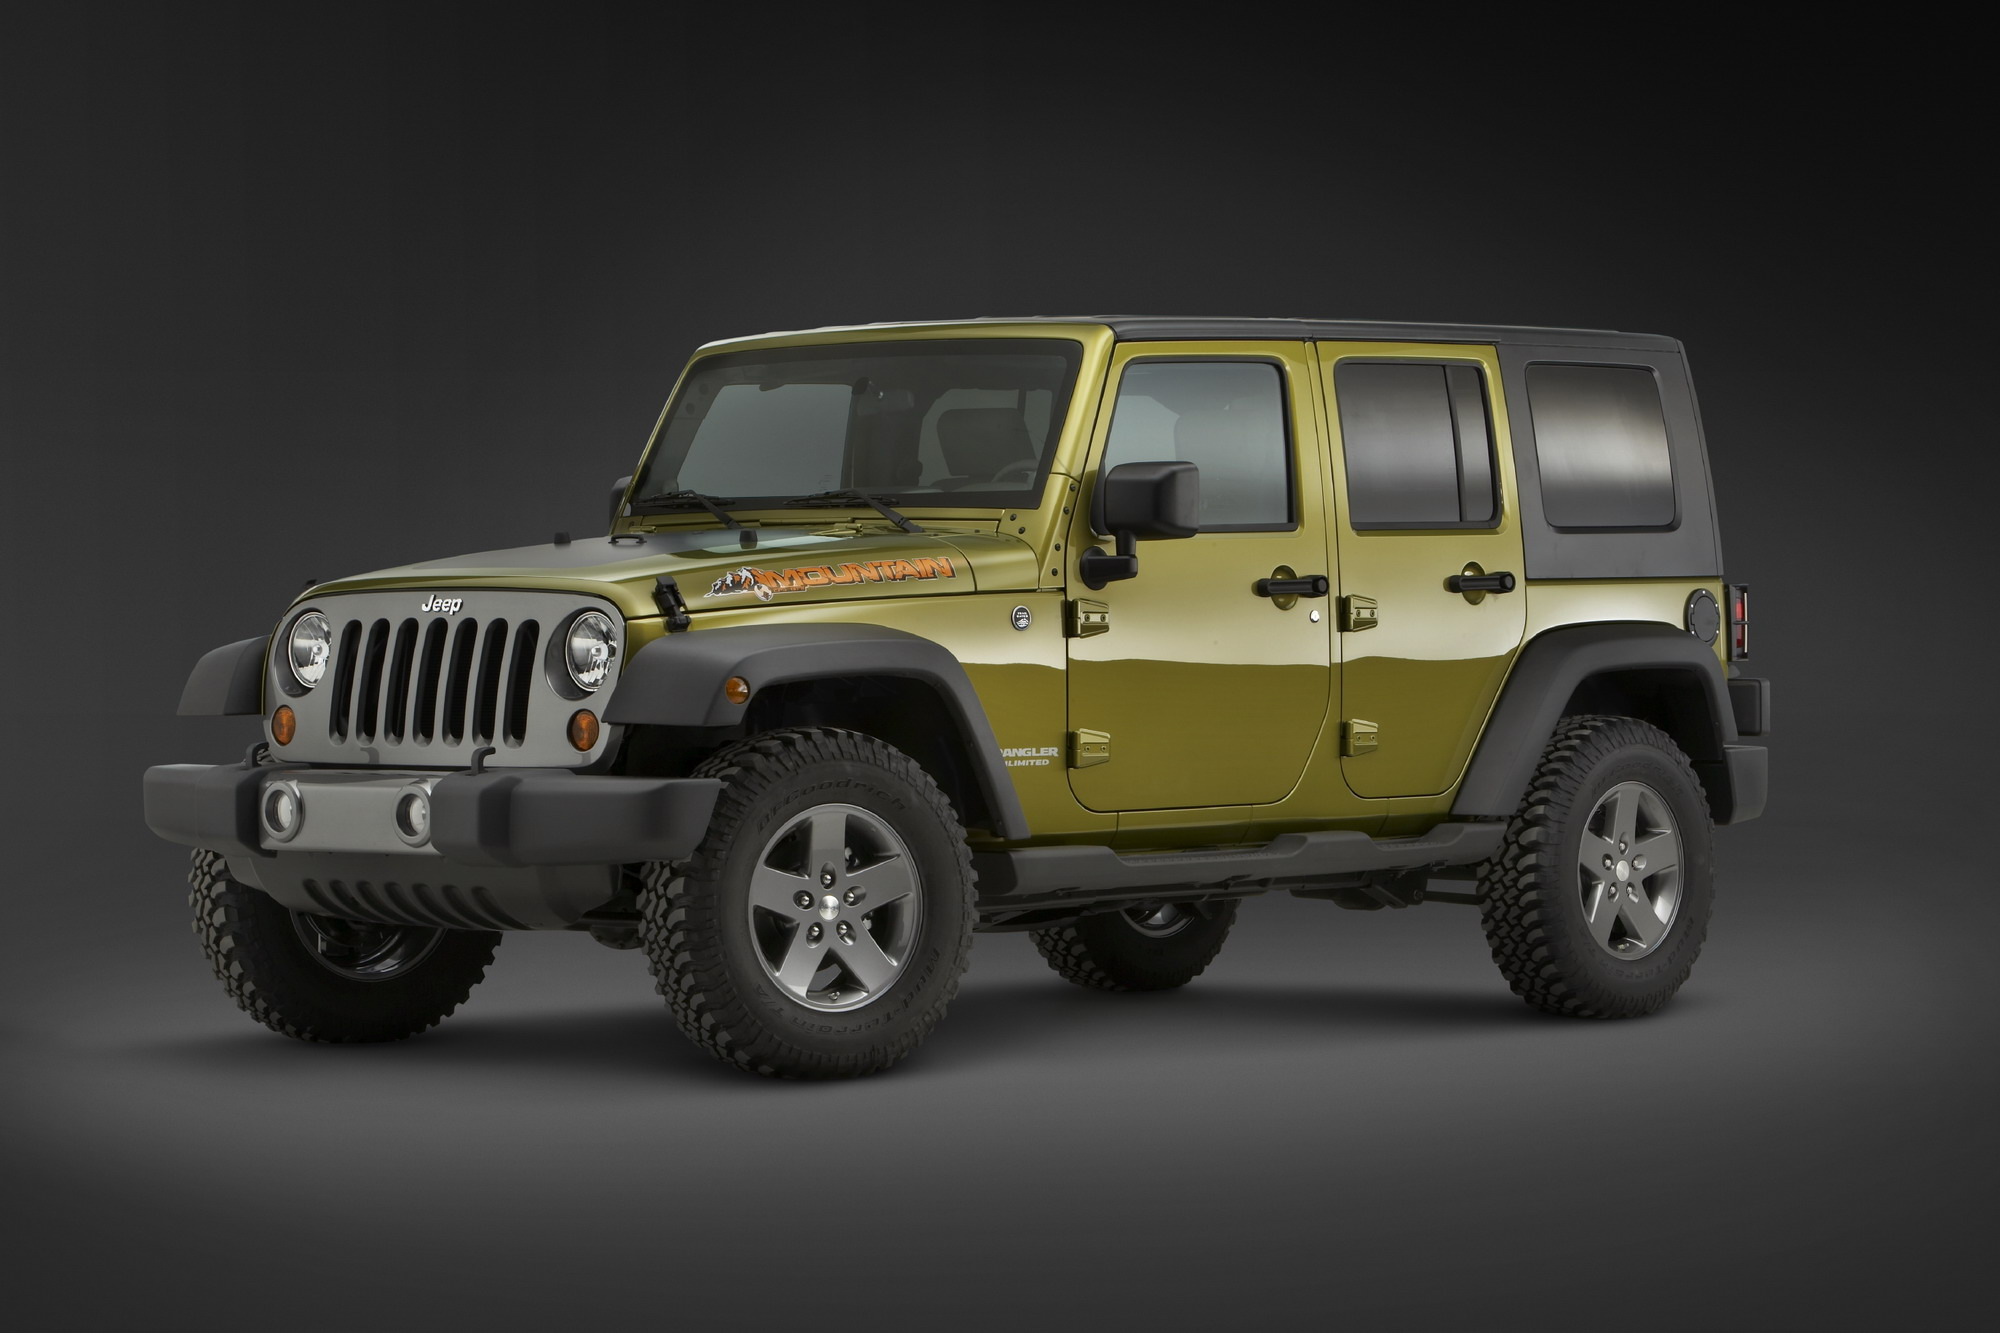 2010 Jeep Wrangler Mountain Edition | Top Speed